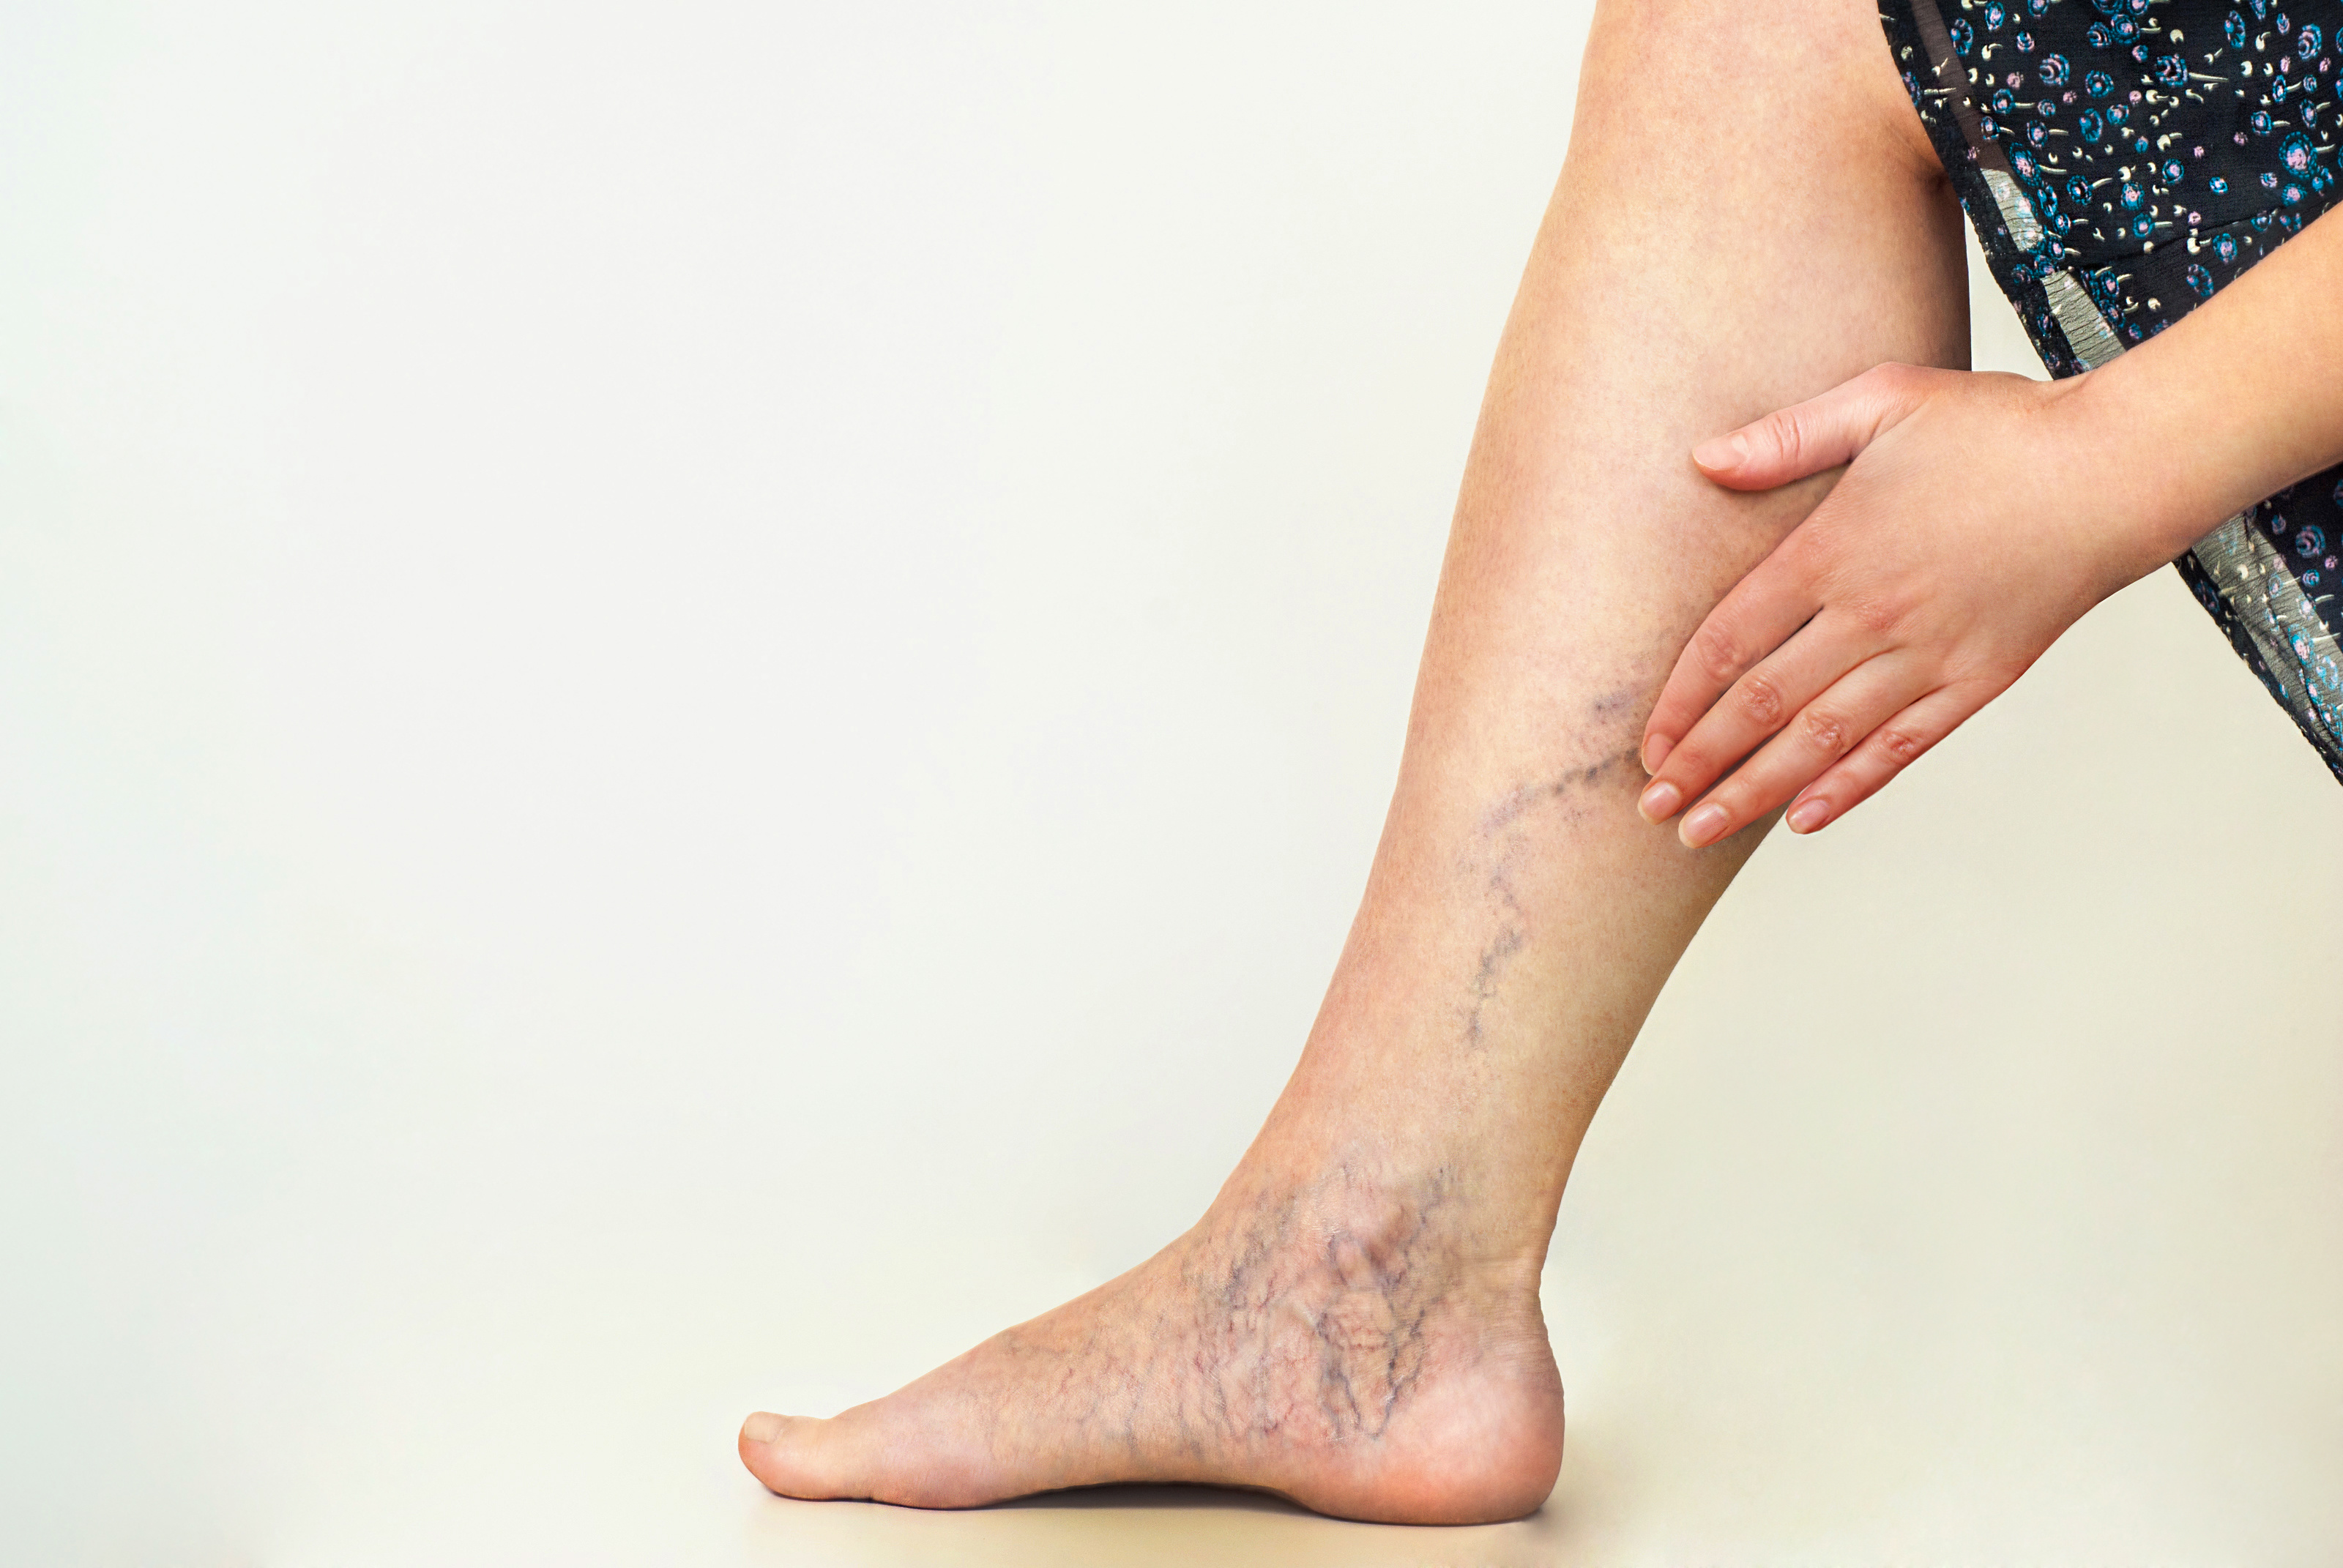 Looking for a comfortable solution to your vein problem? Look at the minimally invasive treatment options available at our varicose vein treatment center in San Diego.